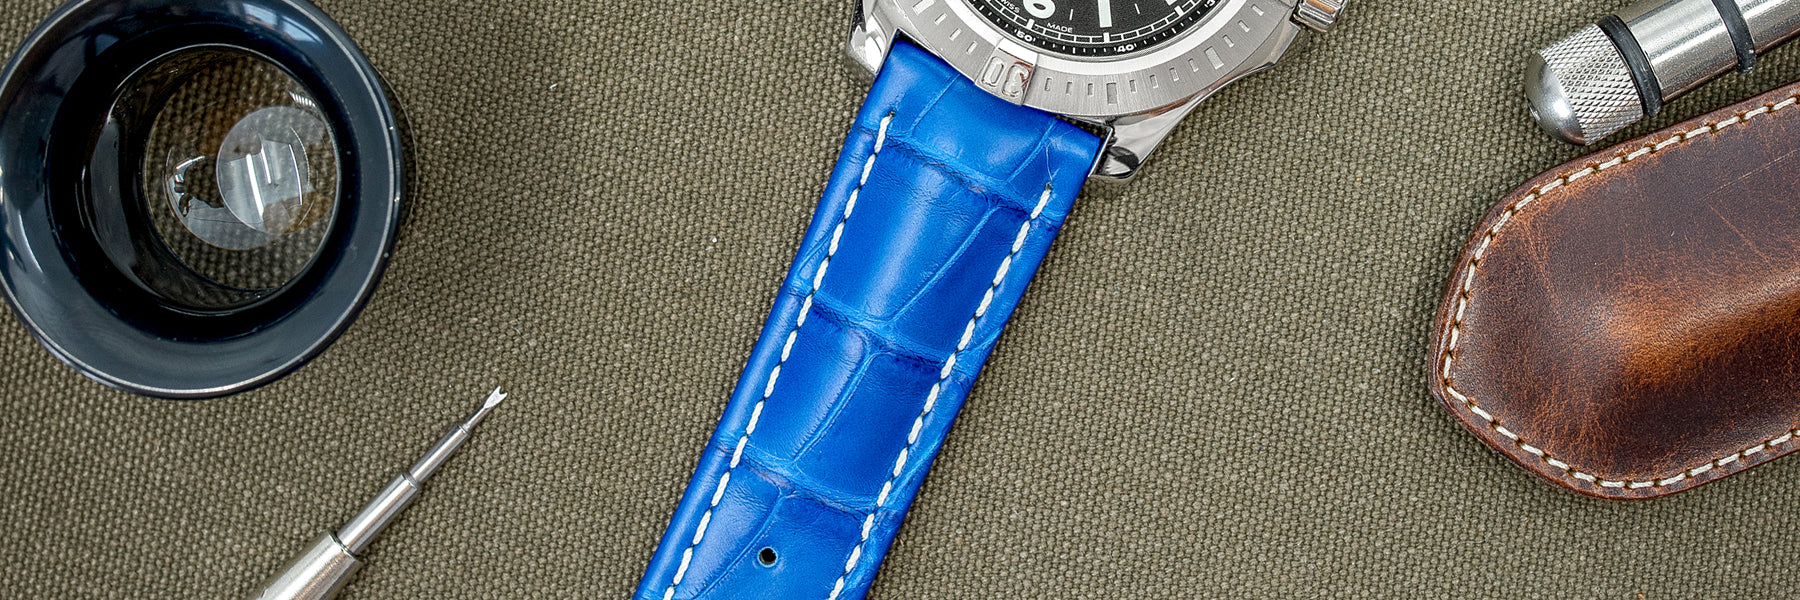 Royal Blue Watch Straps